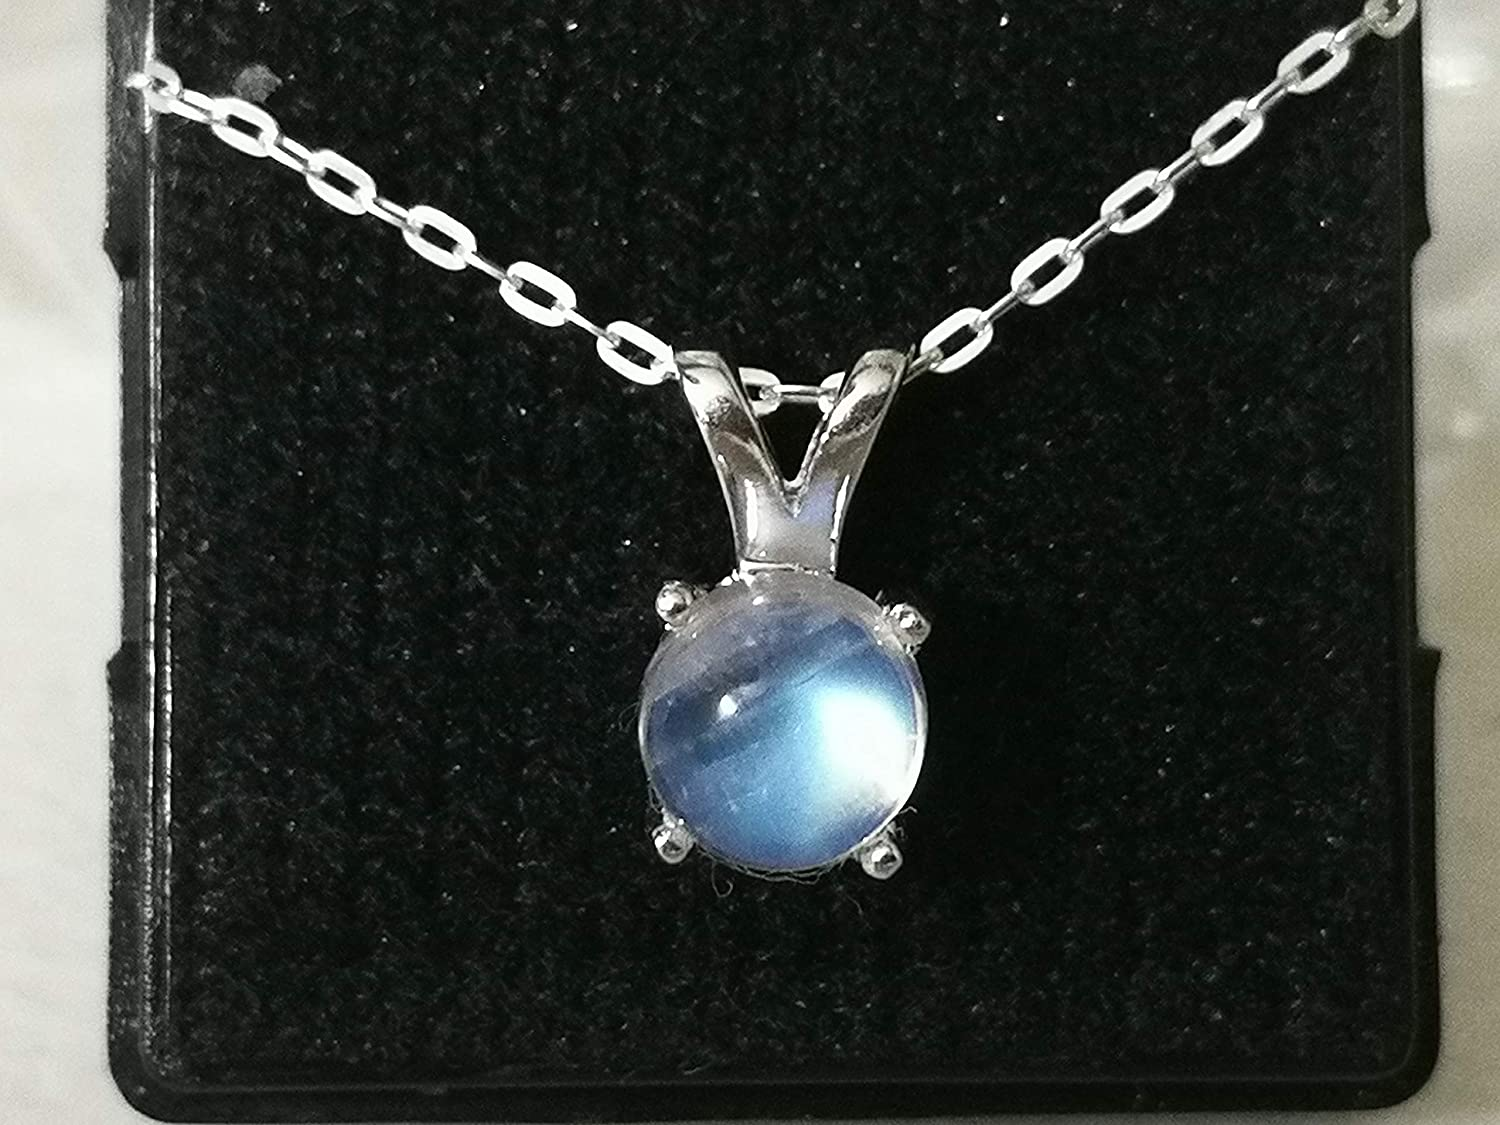 NRBMC Size 16 inches for Women Jewelry Gift Cabochon Genuine Rainbow Moonstone Pendant Necklace 925 Sterling Silver Chain Extender 1 inch